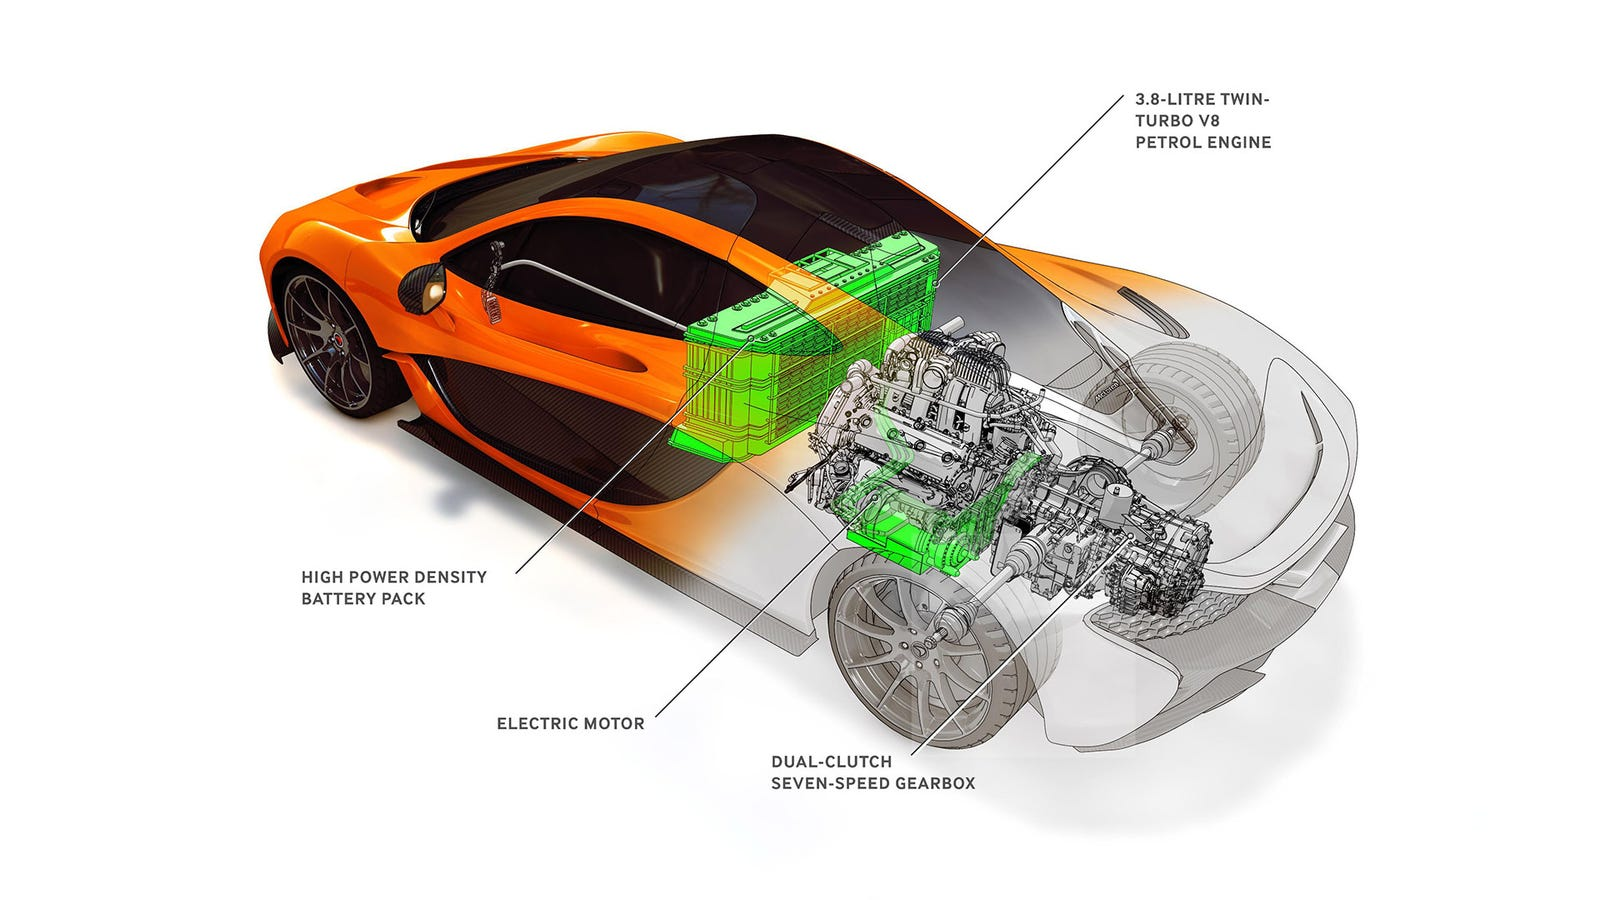 Hybrid Engine Diagram Of Mclaren S Wiring Library Porsche 918 2015 Spyder Comparison Motor Trend This Is How The Techno Fabulous P1 Makes 903 Horsepower